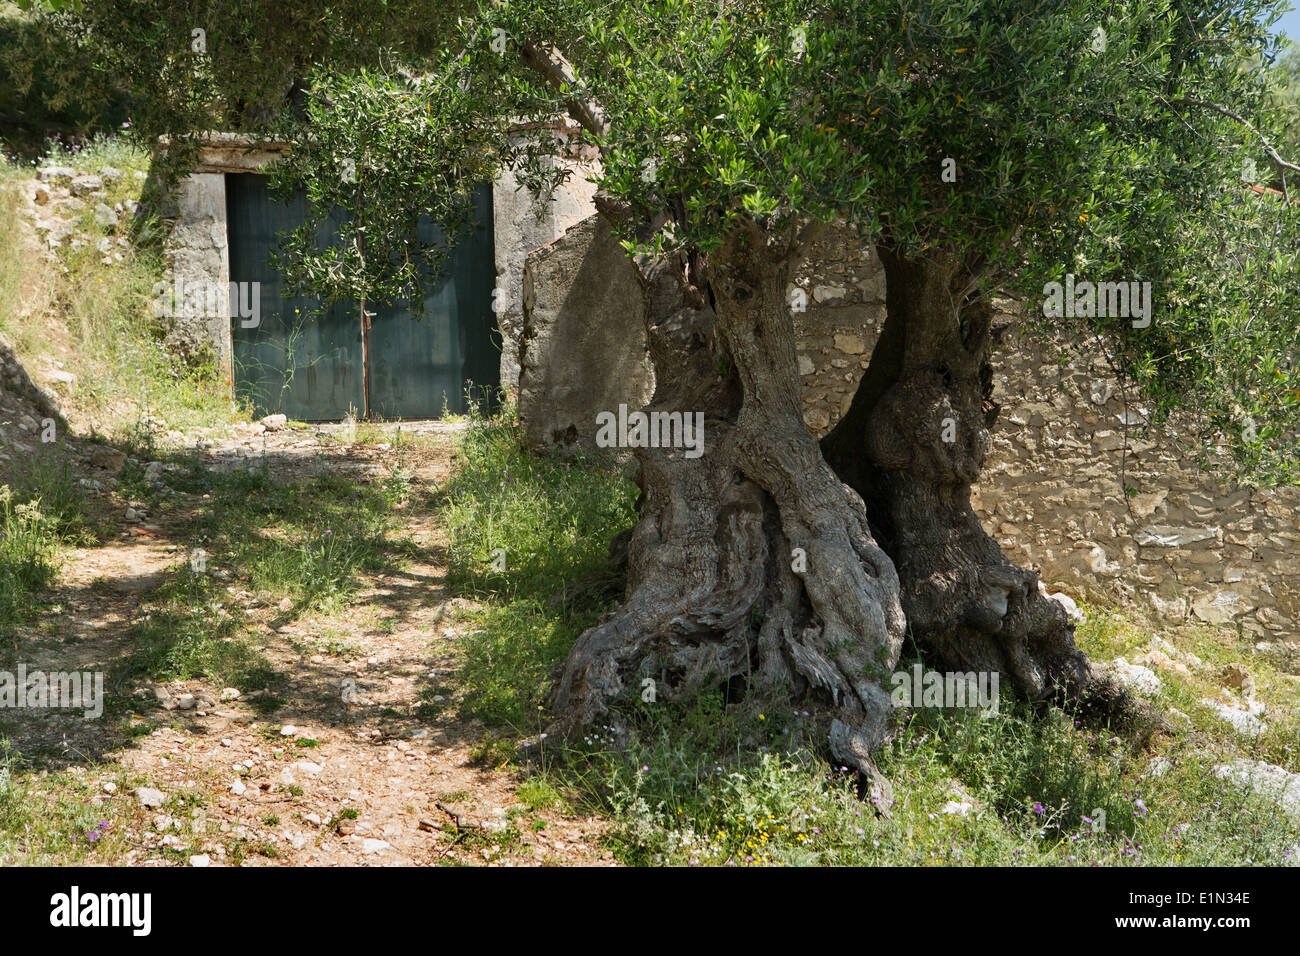 An old Olive Tree, Olea europaea, stands in front of an old garage at Old Skala, Kefalonia, Greece Stock Photo